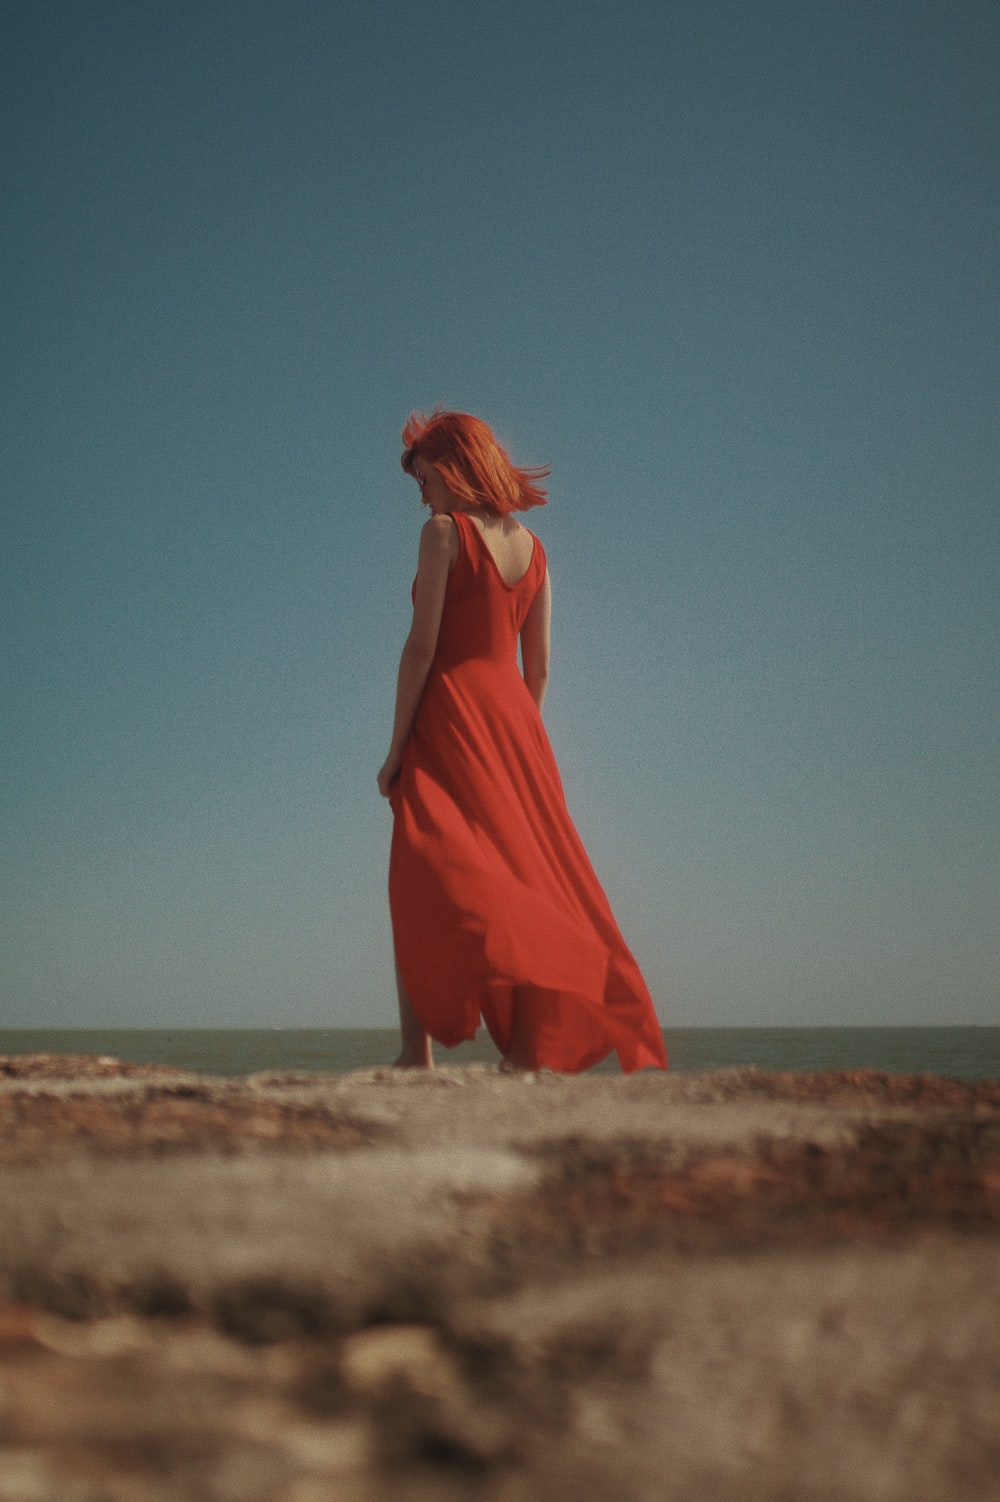 woman in orange dress standing on brown sand during daytime